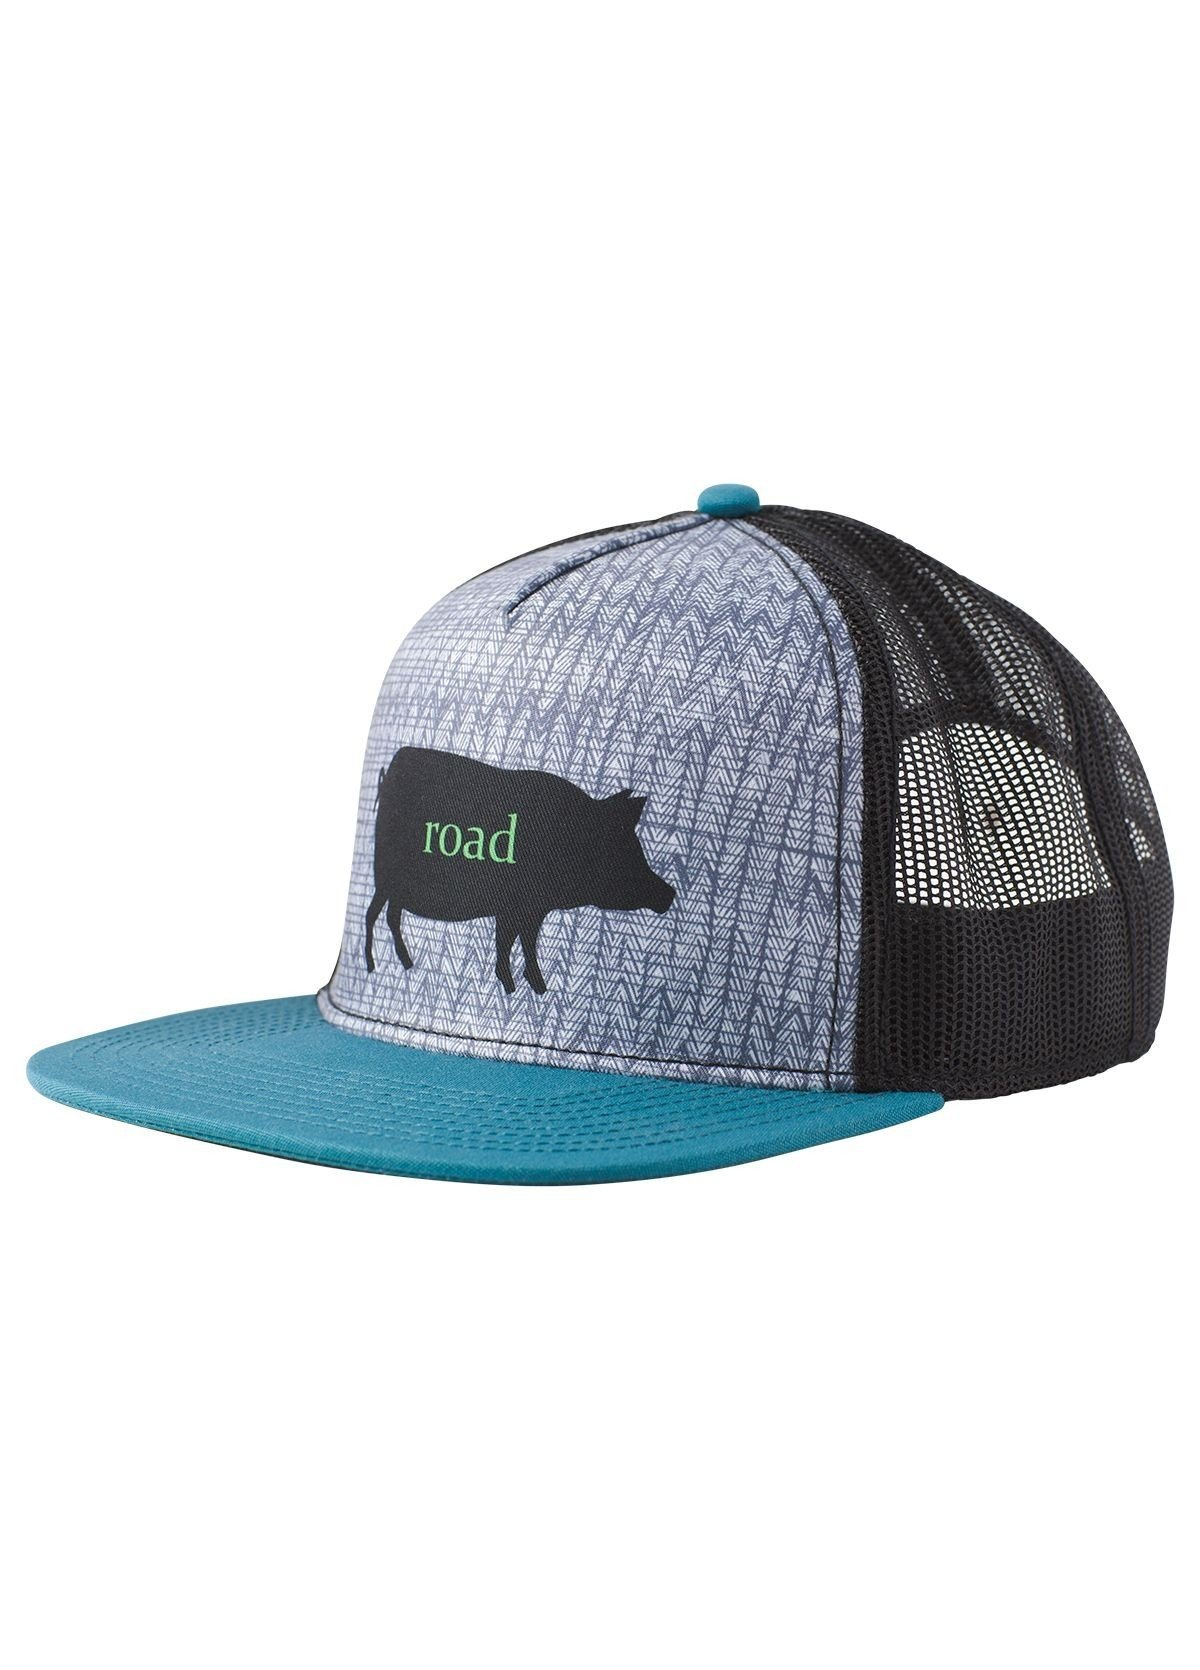 prAna Journeyman Trucker Hat Road Hog PraJR1RHhat